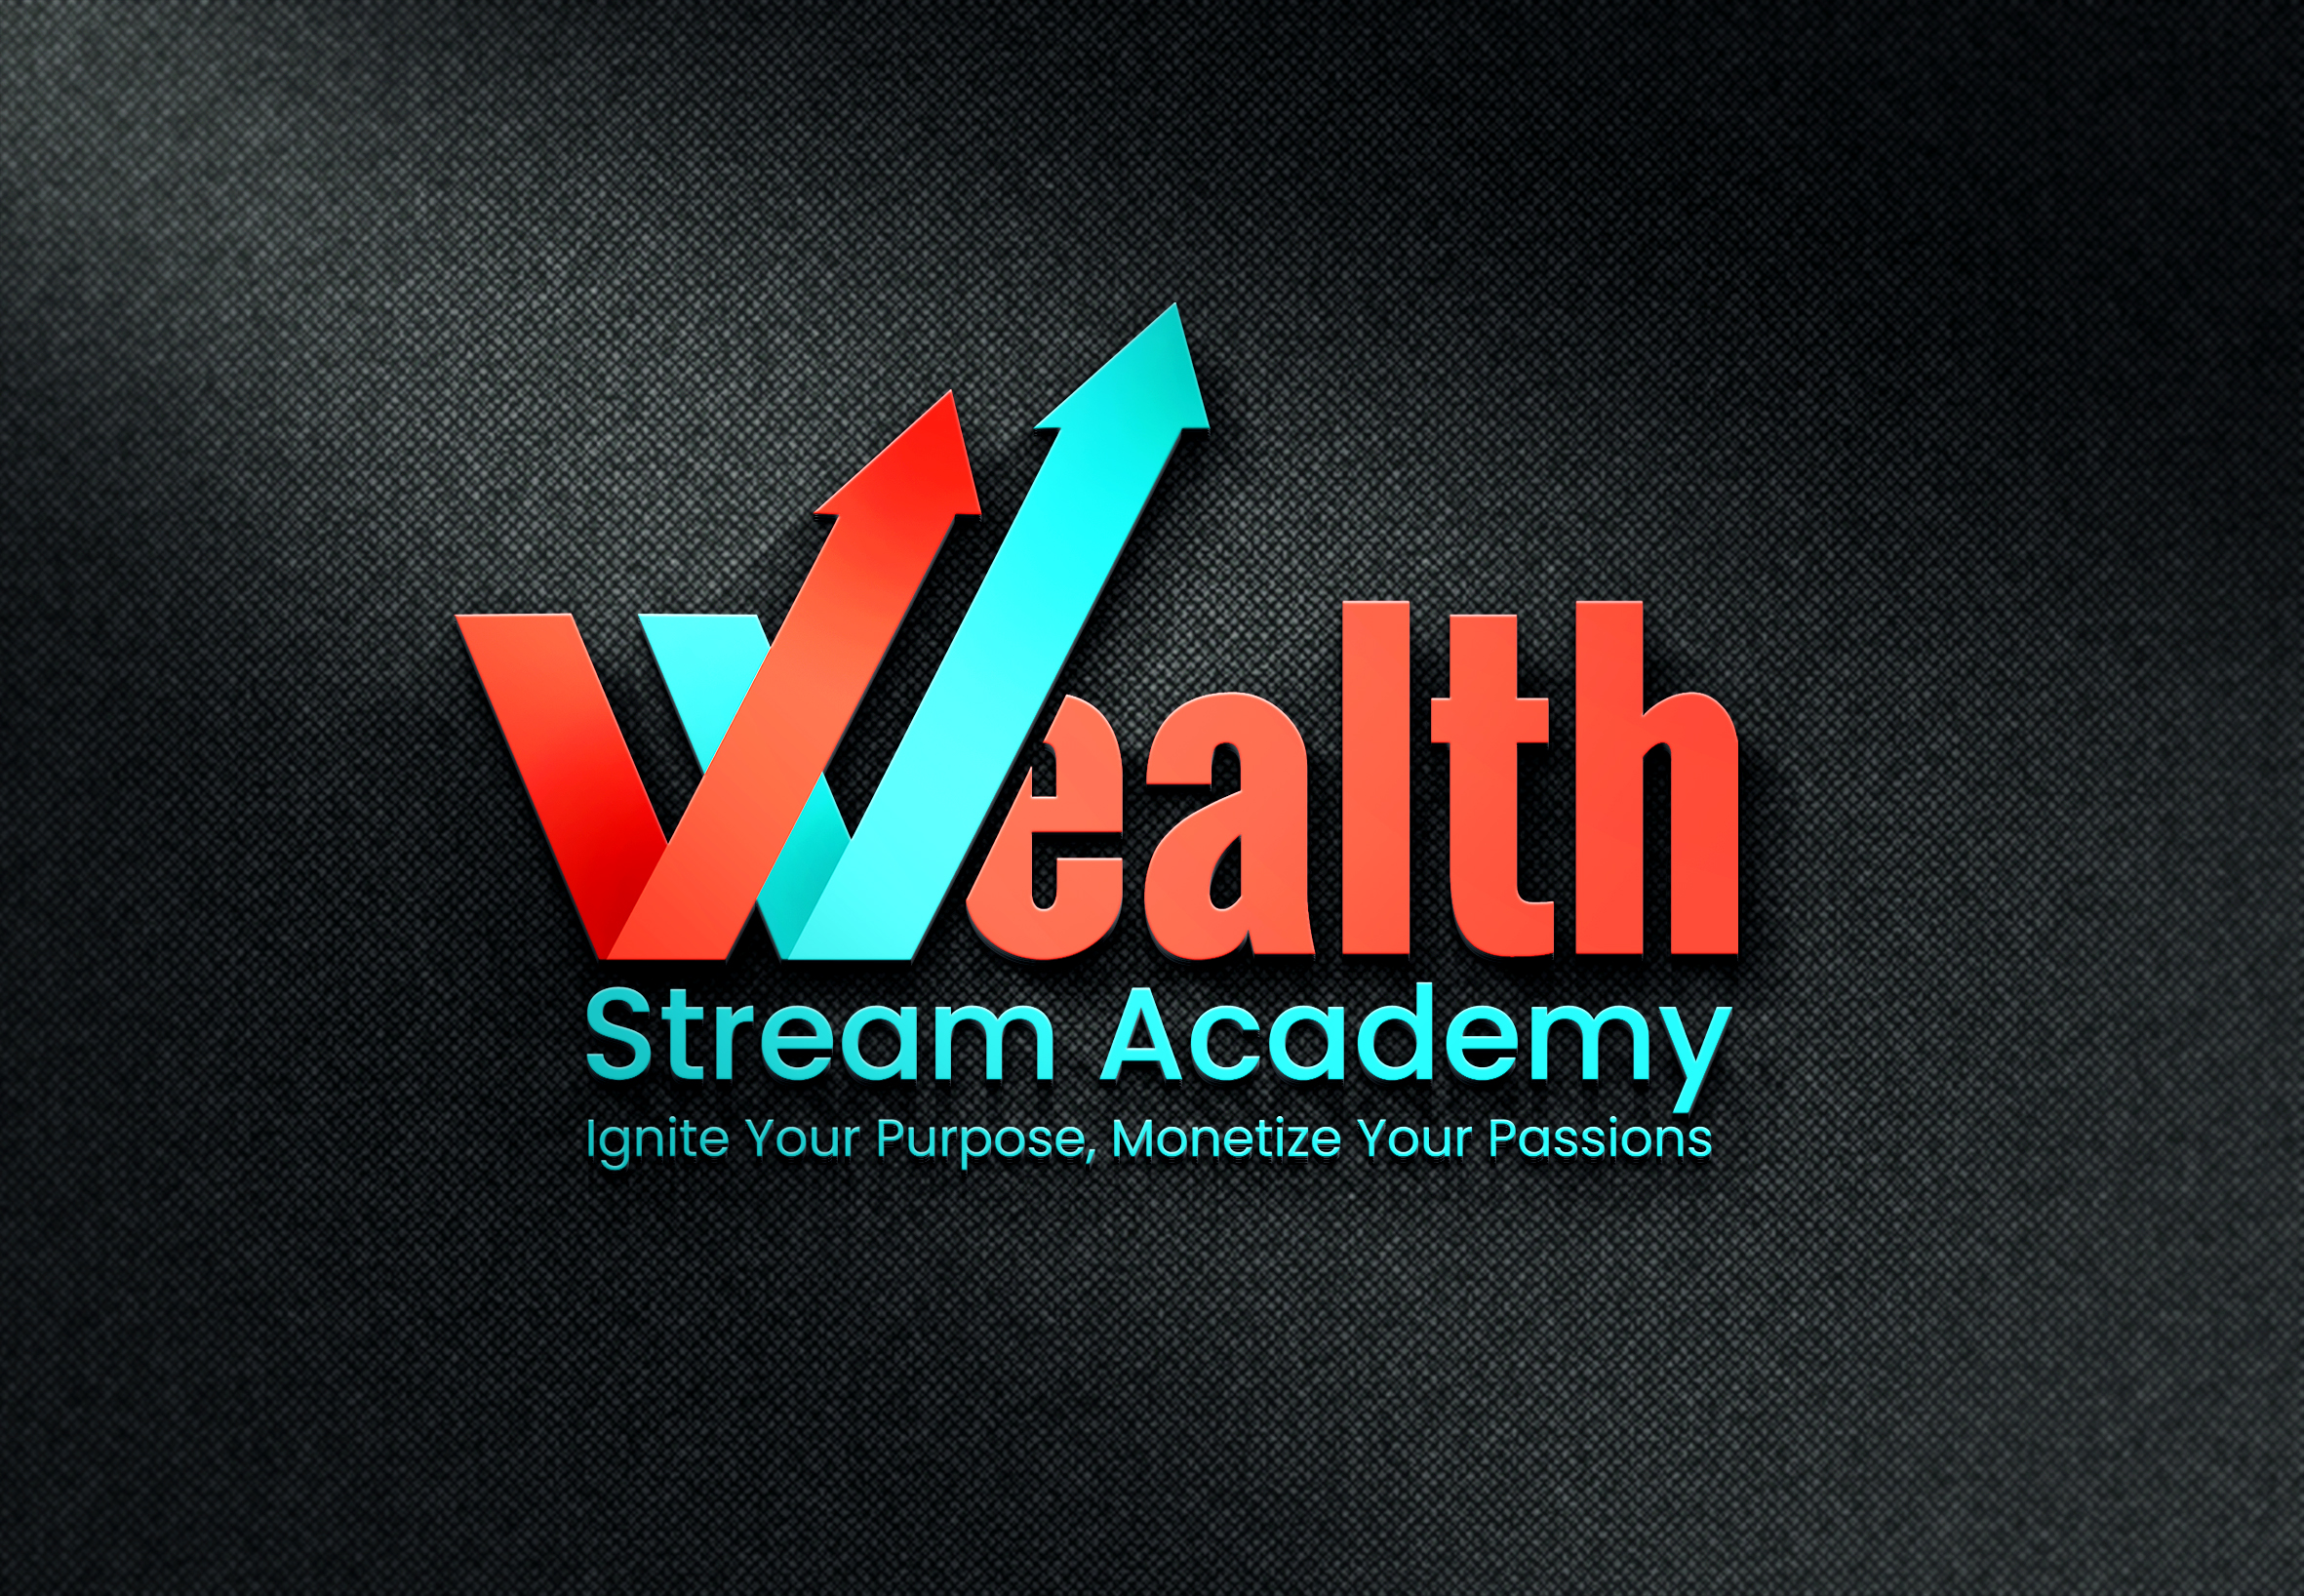 Wealth Stream Academy